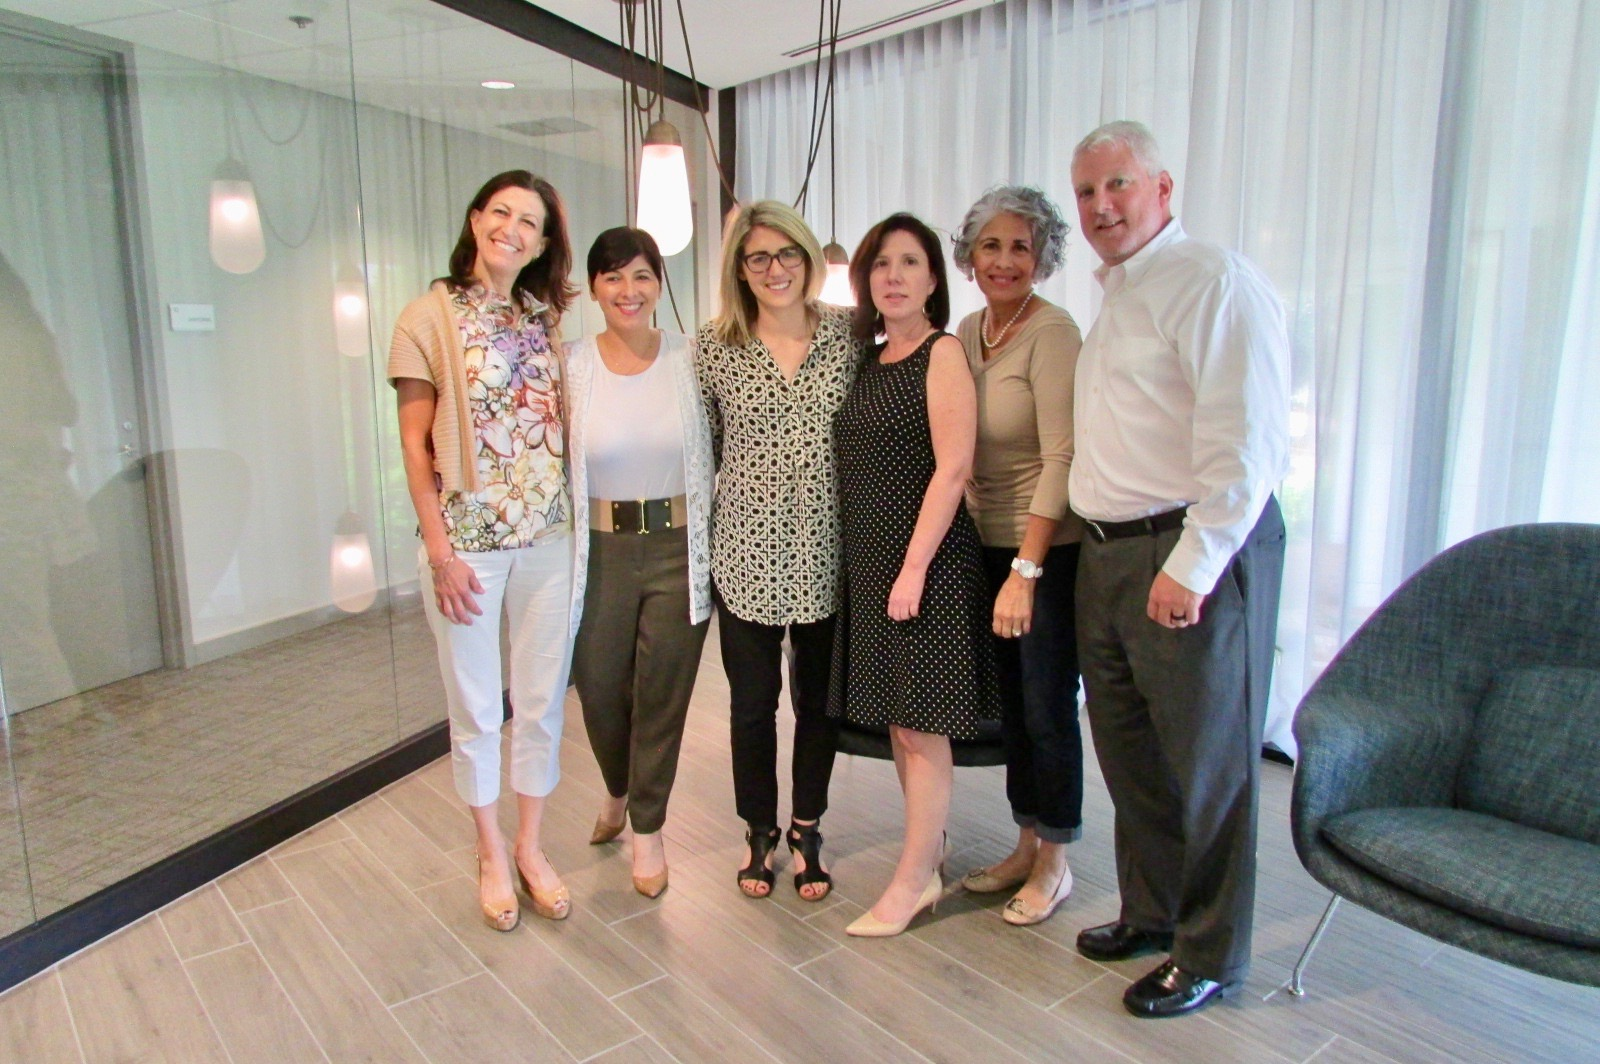 Left to right: Paralegal, Lisa Wilkerson,Operations Coordinator, Monica Azar, Company Culture Enthusiast, Julia Kortberg,Marketing Director, Karen Wilcox, Corporate Paralegal, Coy Pierce, and Co-Founder, Joe English